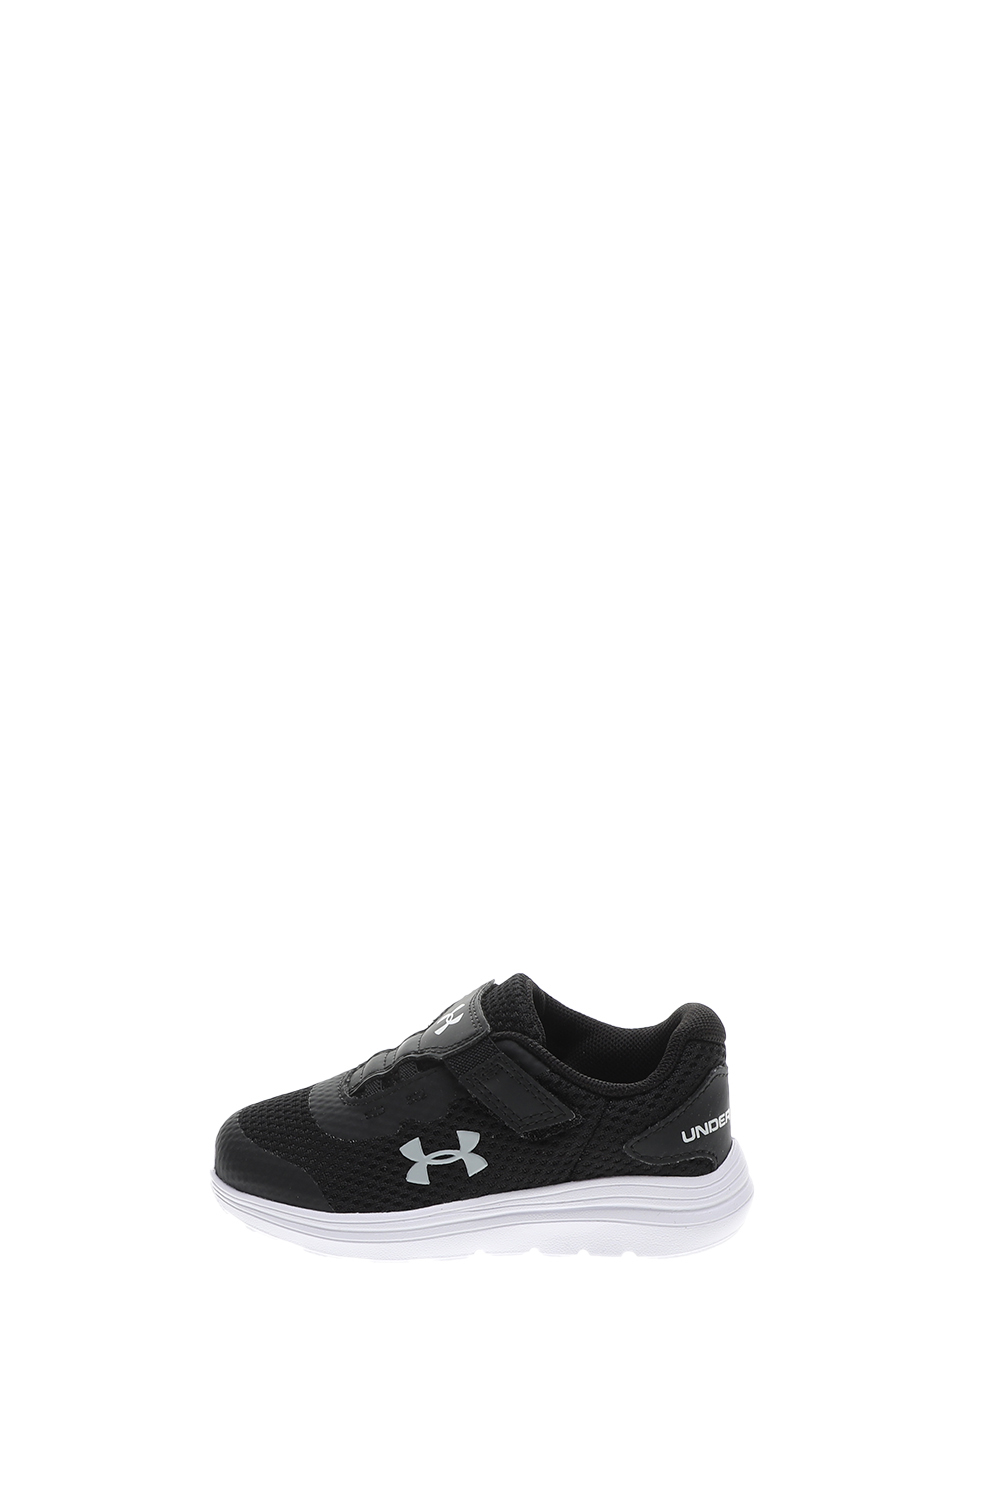 UNDER ARMOUR – Παιδικά αθλητικά παπούτσια UNDER ARMOUR Inf Surge 2 AC μαύρα